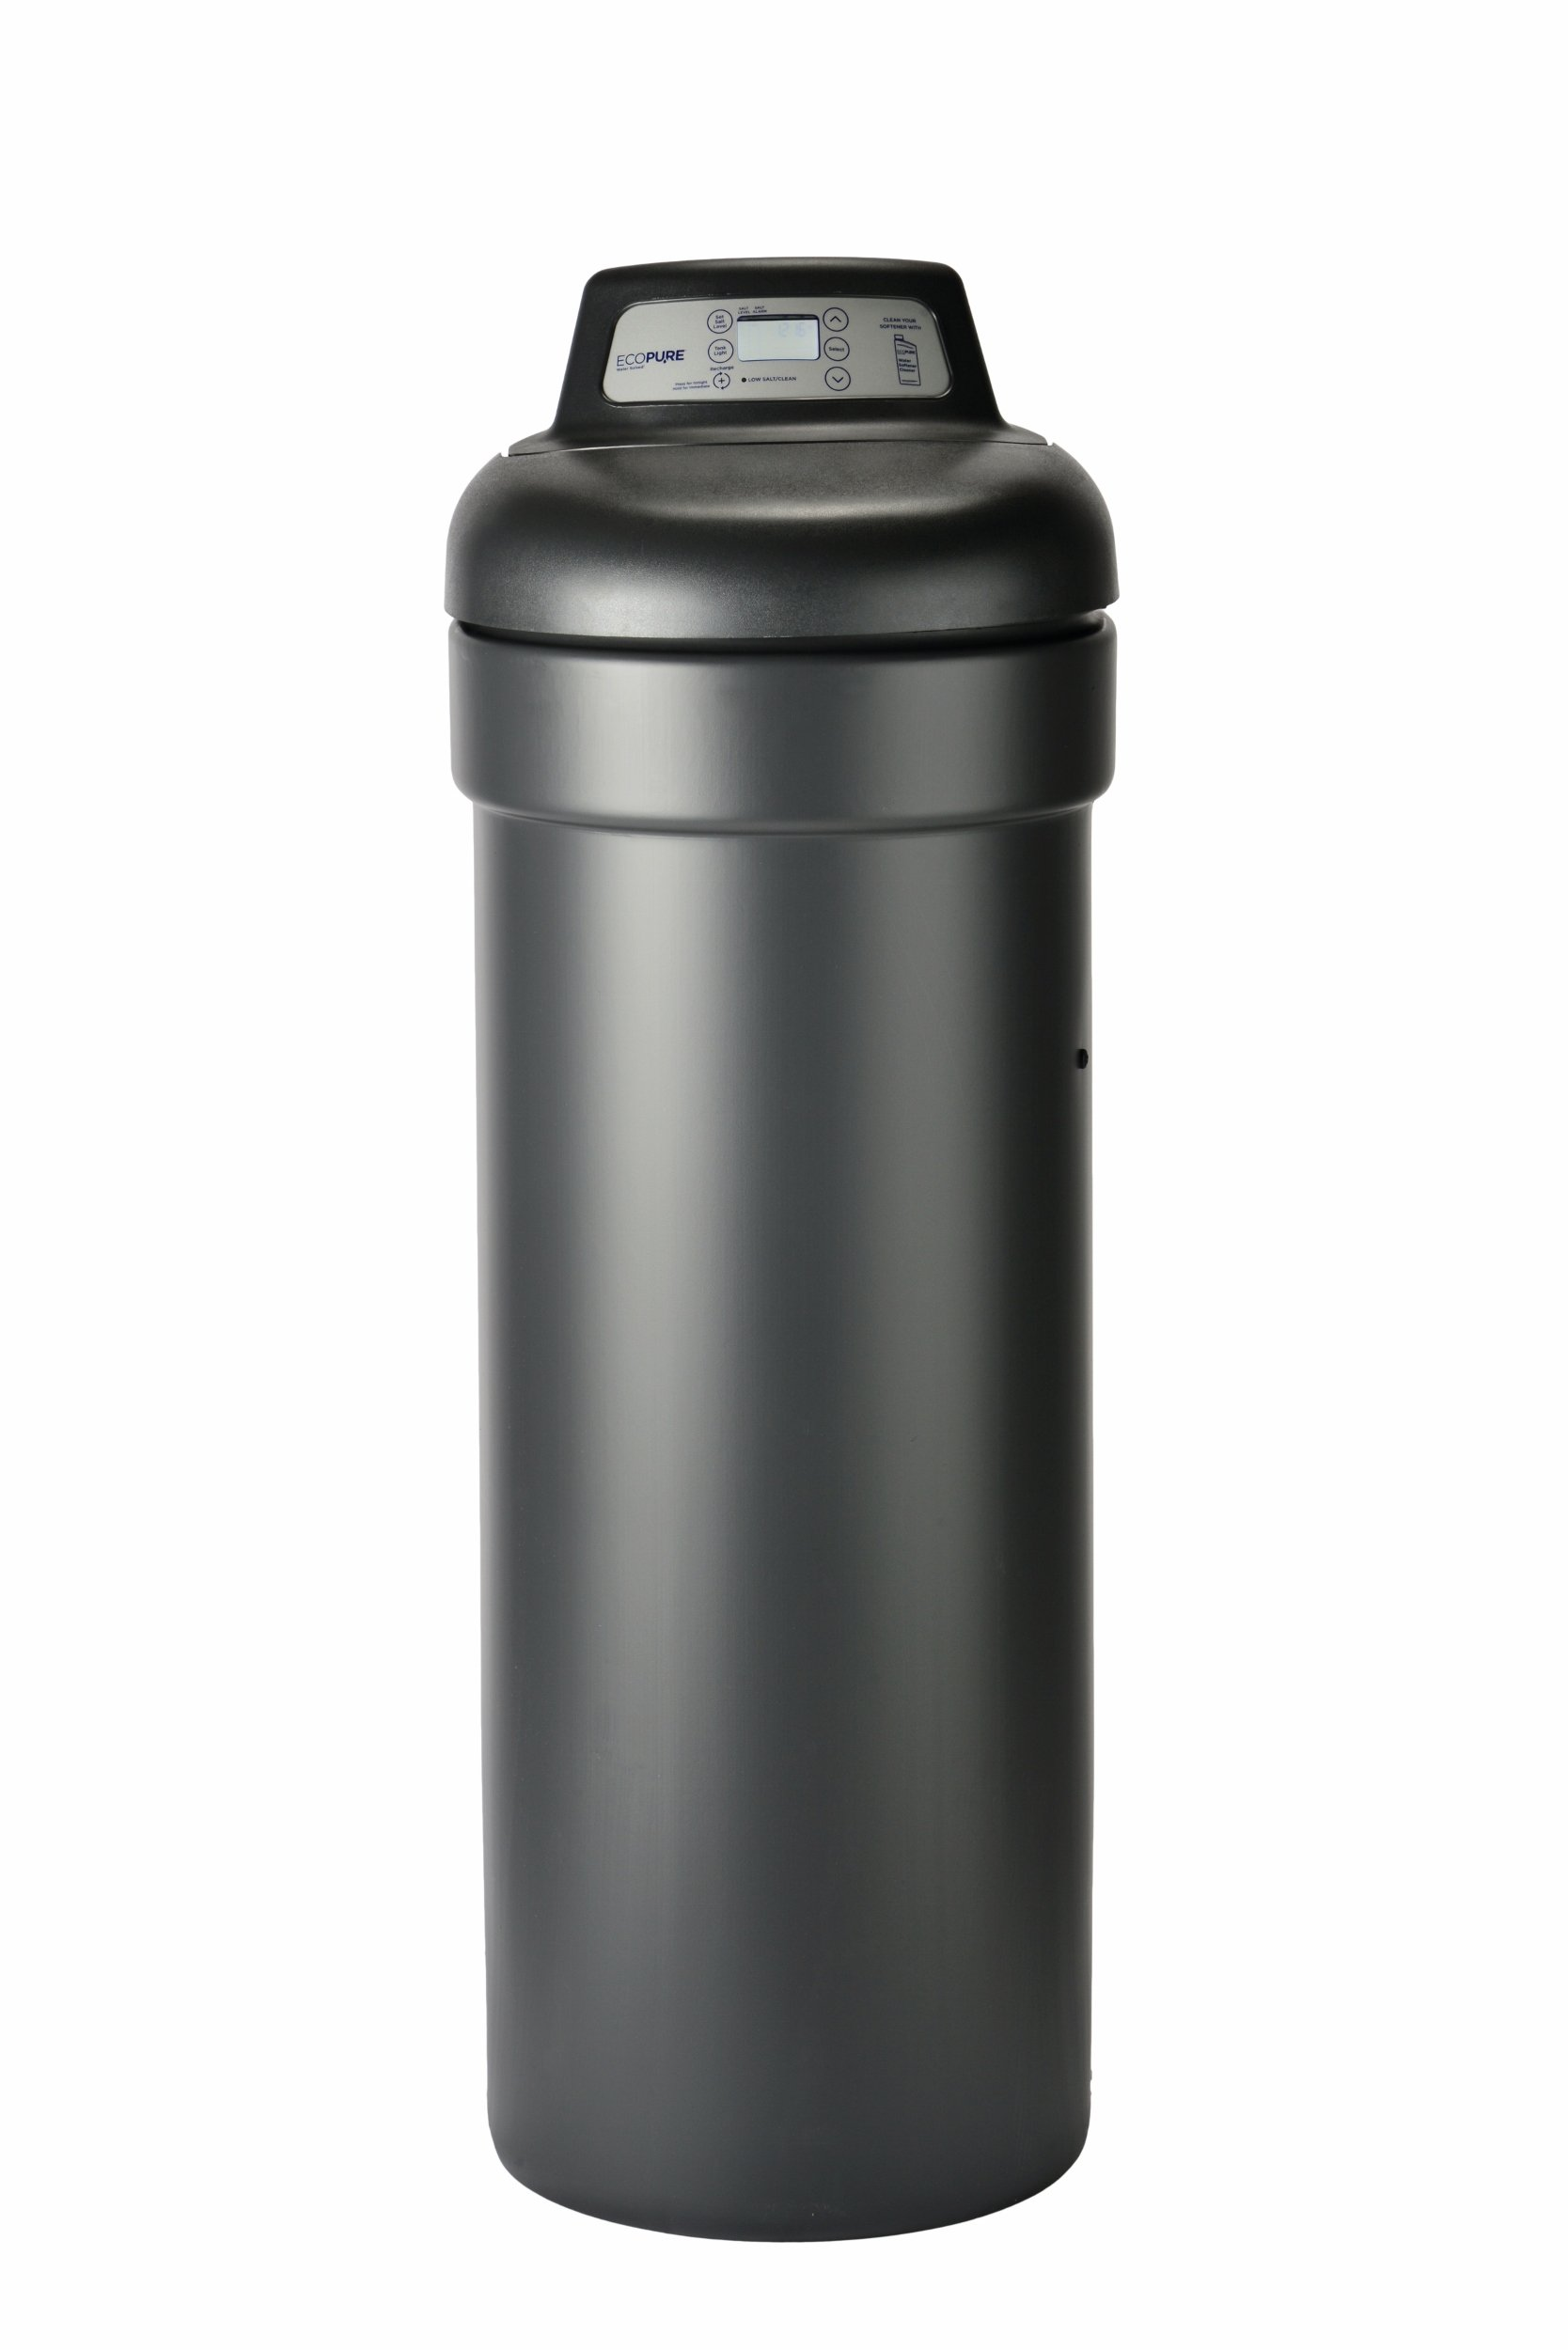 New Innovation EcoPure EPWHE No Mess Whole Home Water Filtration System NSF Certified Designed to Last Built in the USA